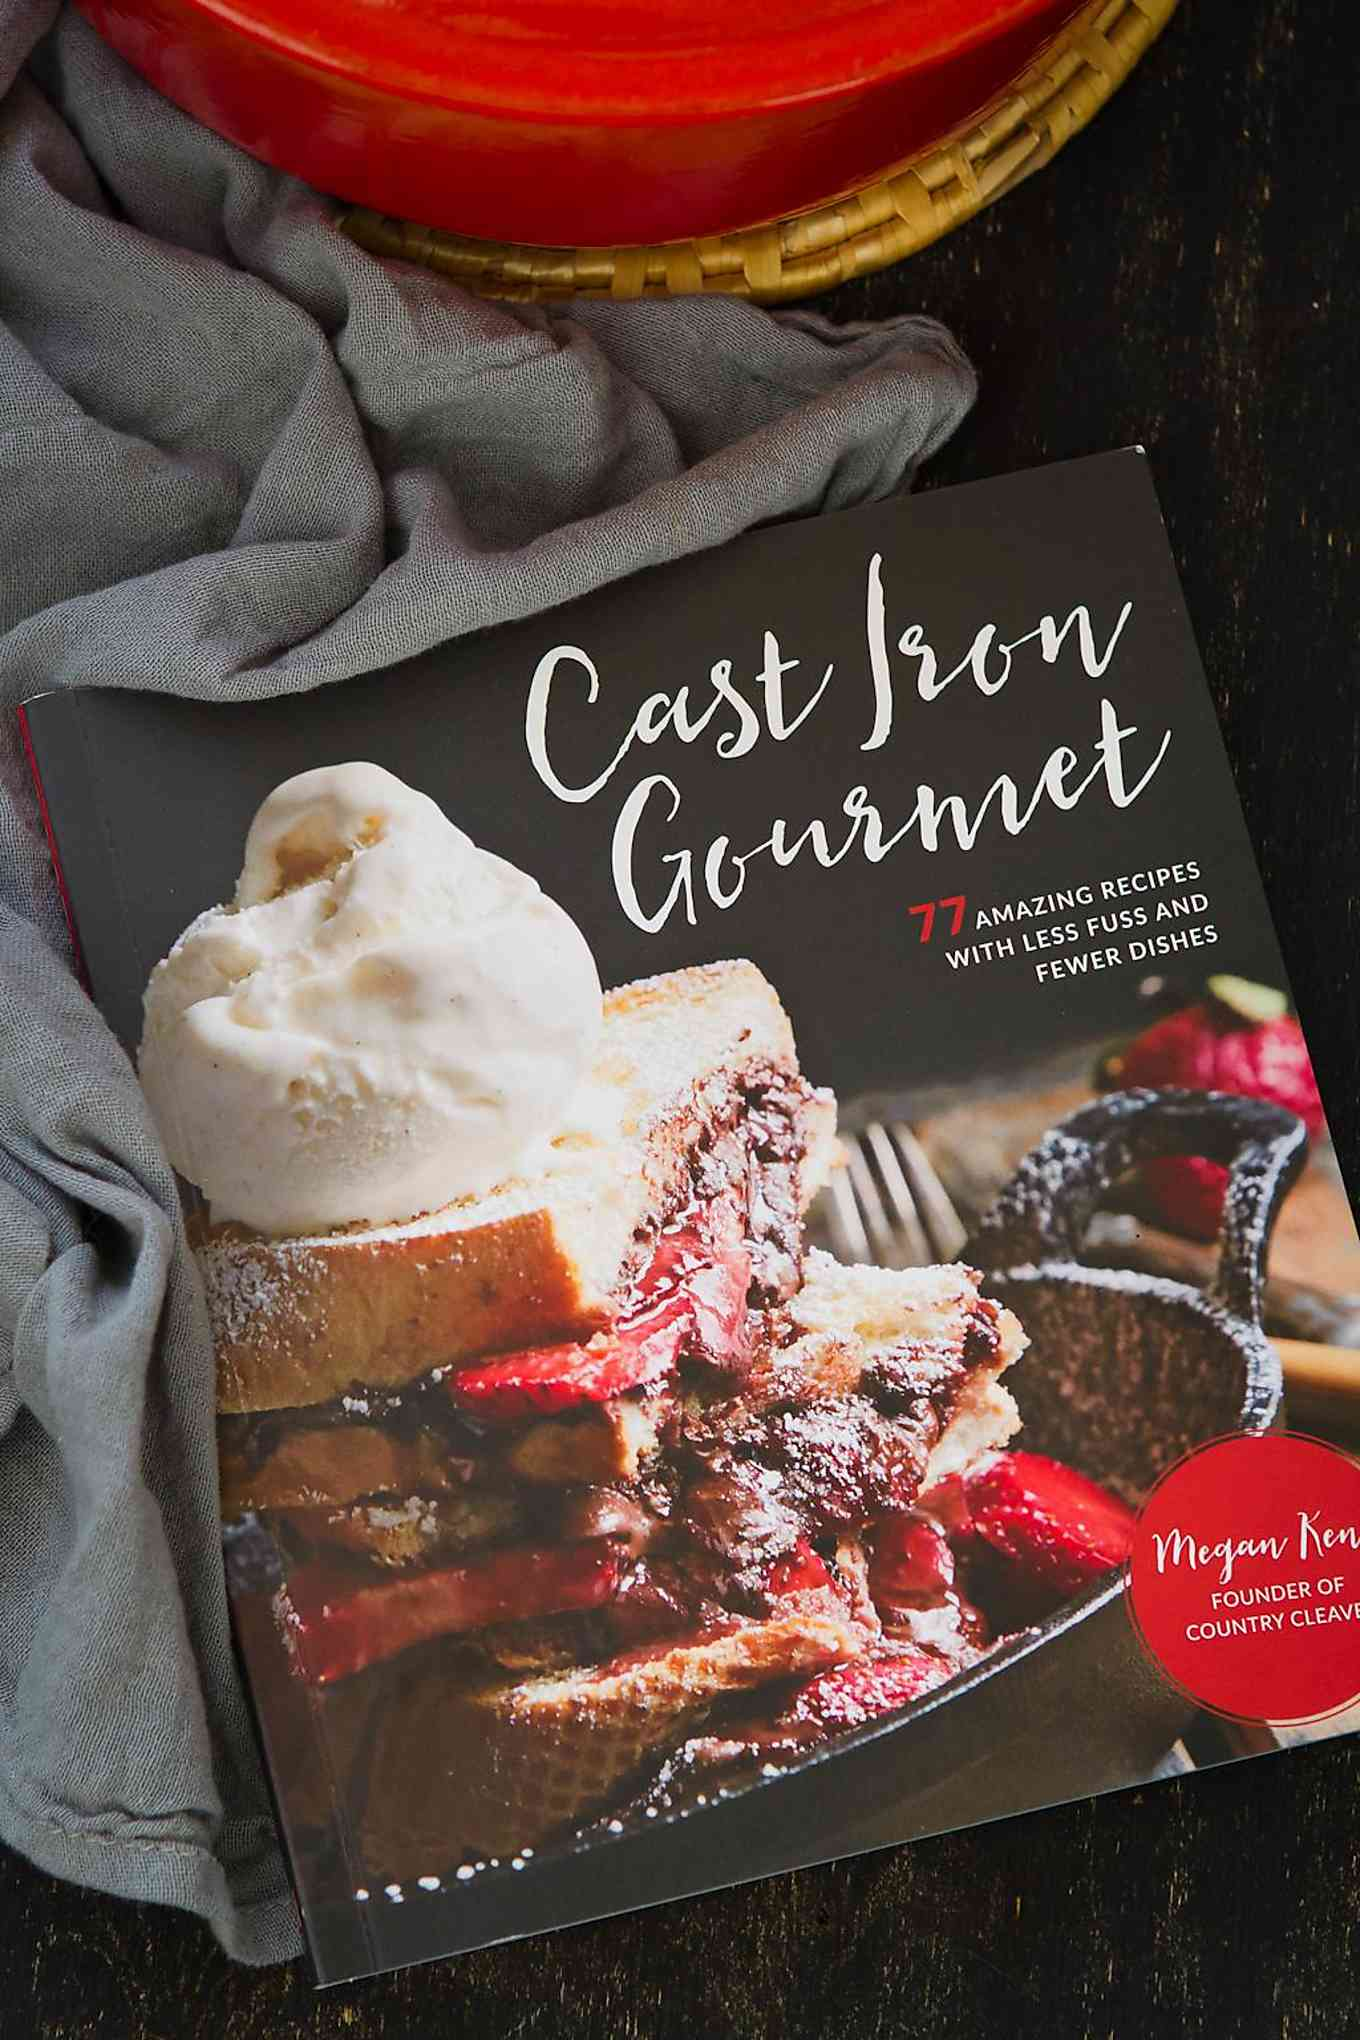 Cast Iron Gourmet by Megan Keno of Country Cleaver